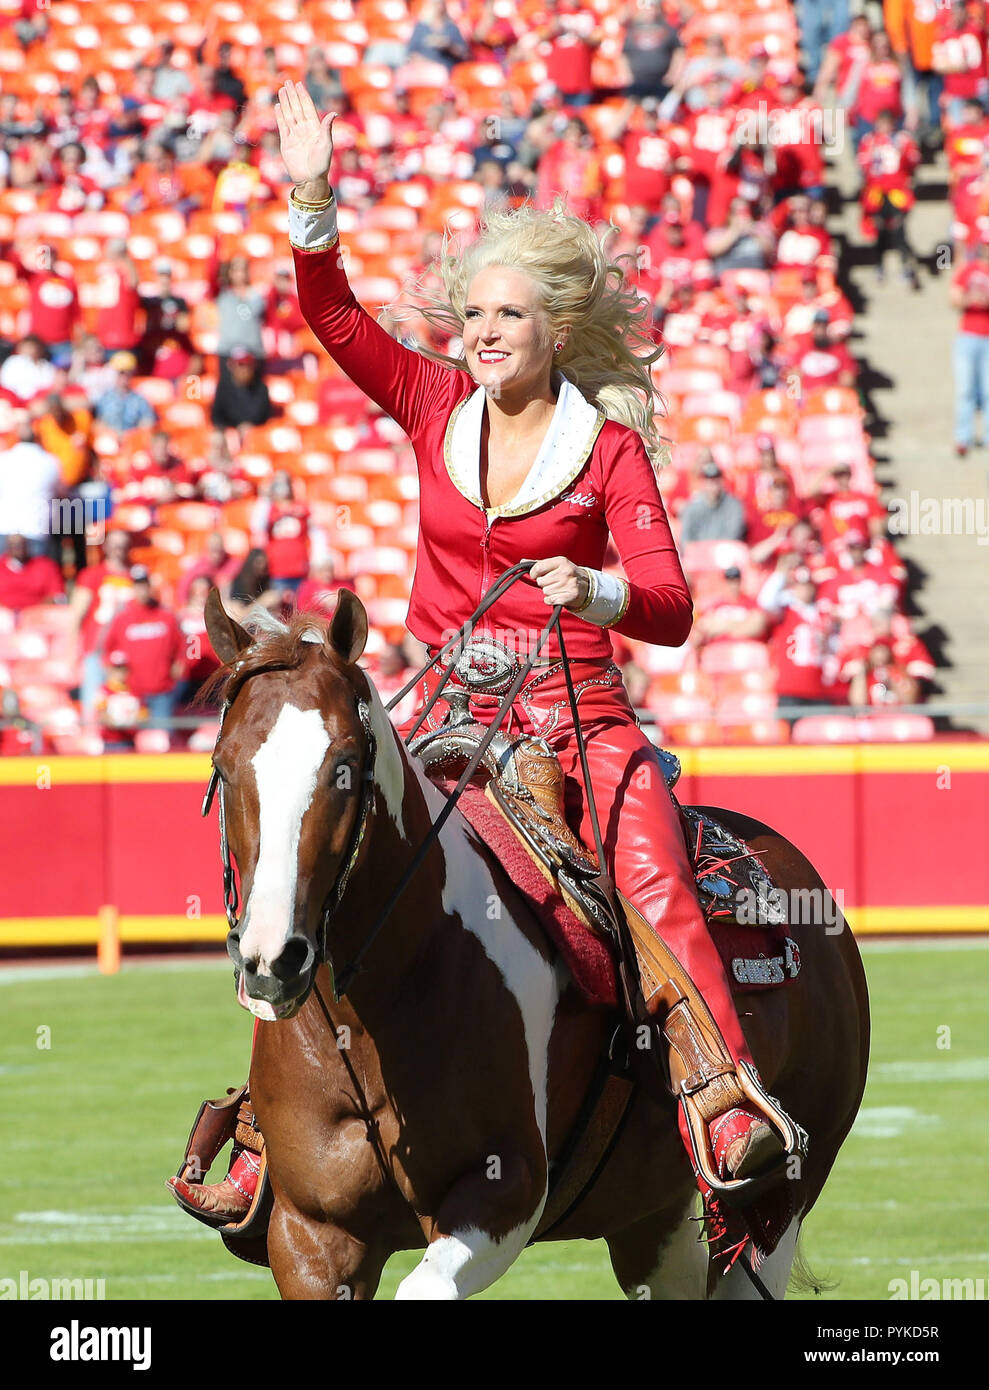 Kansas City United States 28th Oct 2018 Oct 28 2018 Kansas City Mo Usa Warpaint The Kansas City Chiefs Mascot And Horse Along With Rider Susie Derouchey During Pregame Before Playing Against